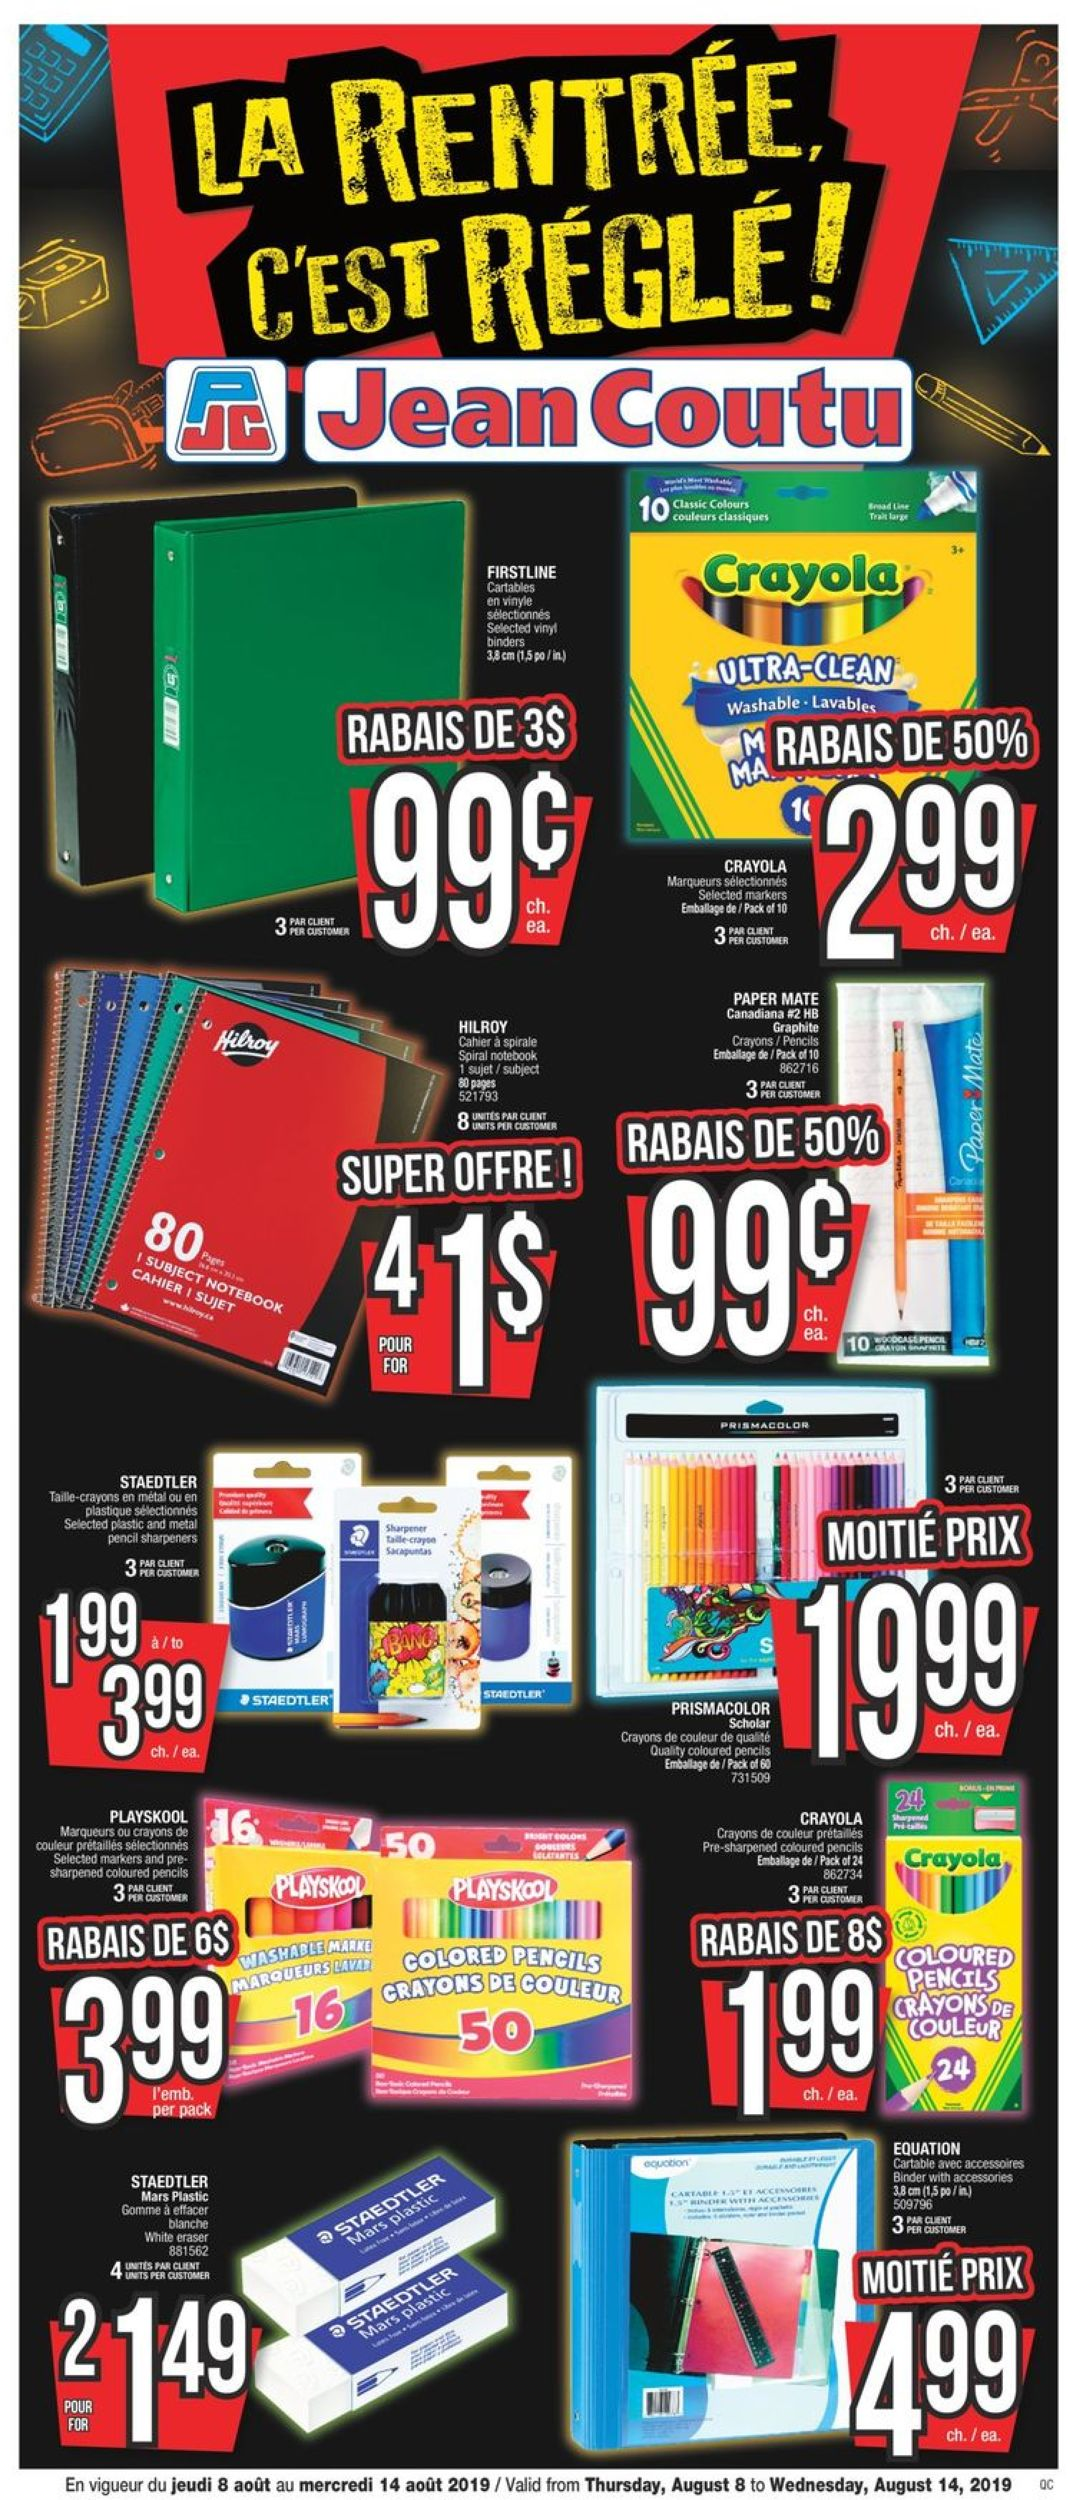 Jean Coutu Flyer - 08/08-08/14/2019